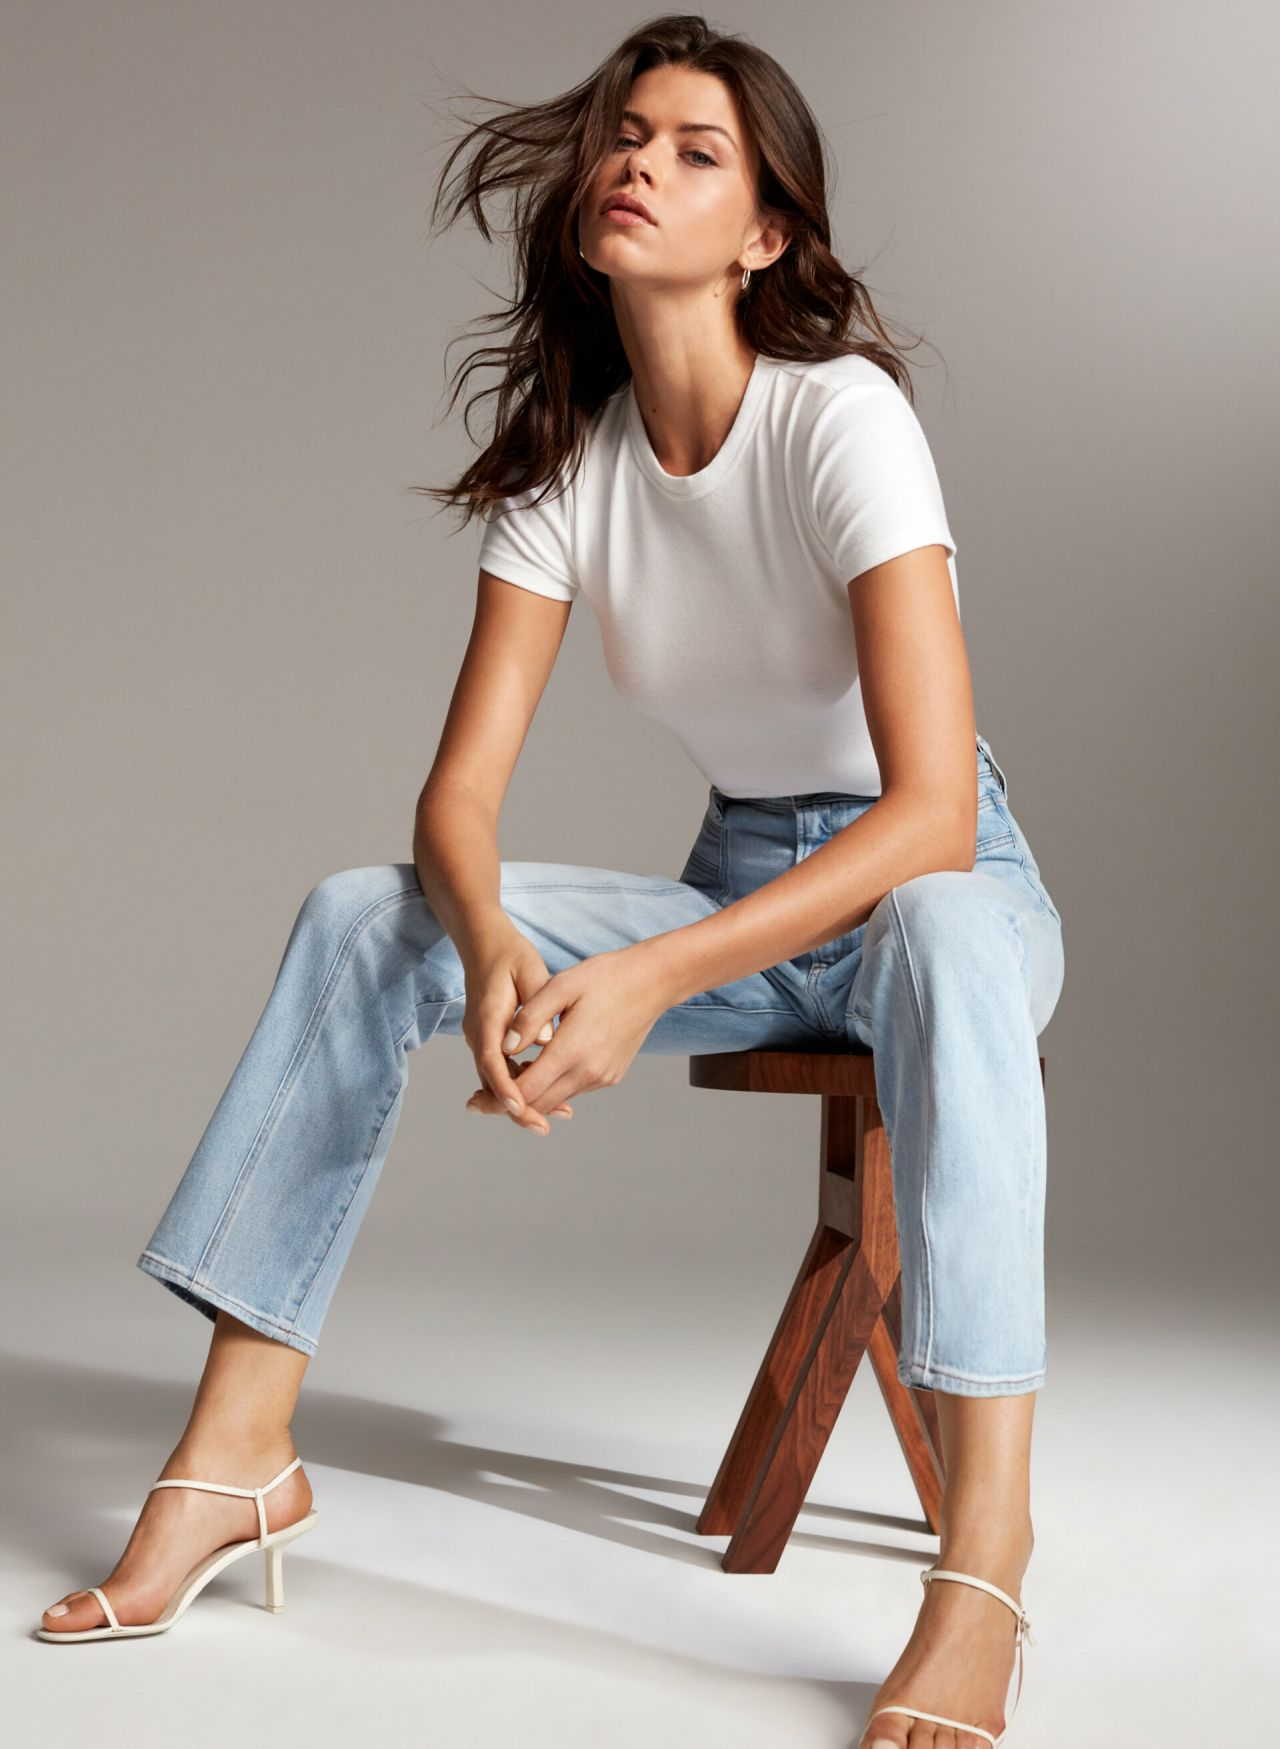 Georgia Fowler - Modeling for Aritzia Jeans March 2019